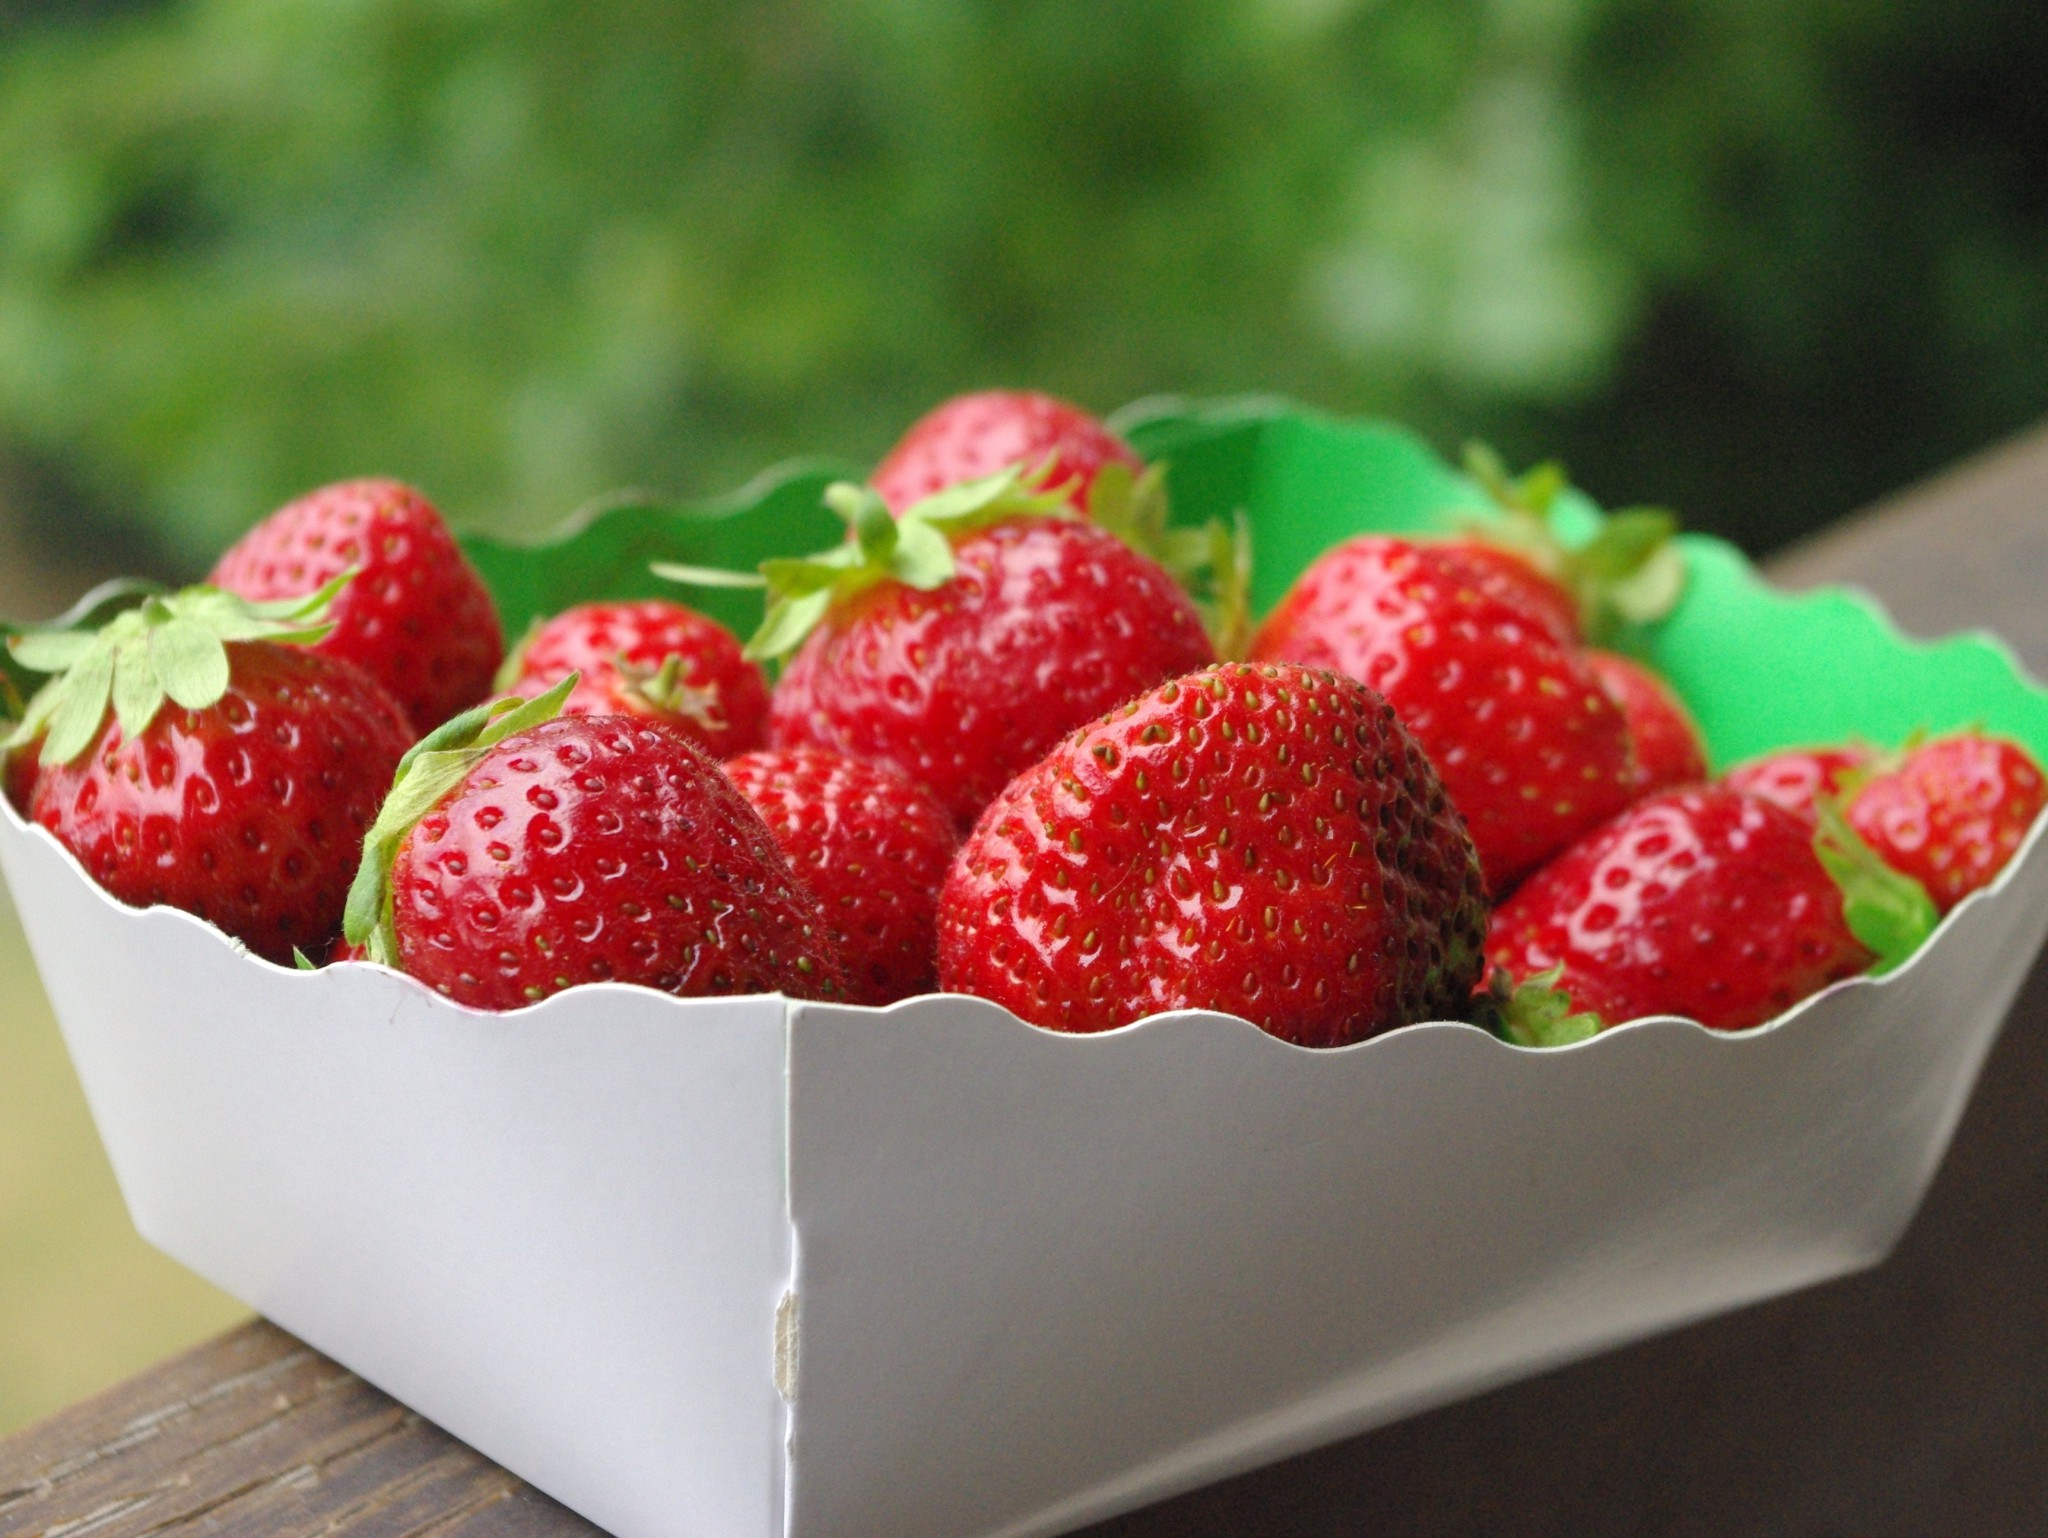 Strawberries bought at the traditional market of Maisons-Laffitte © French Moments